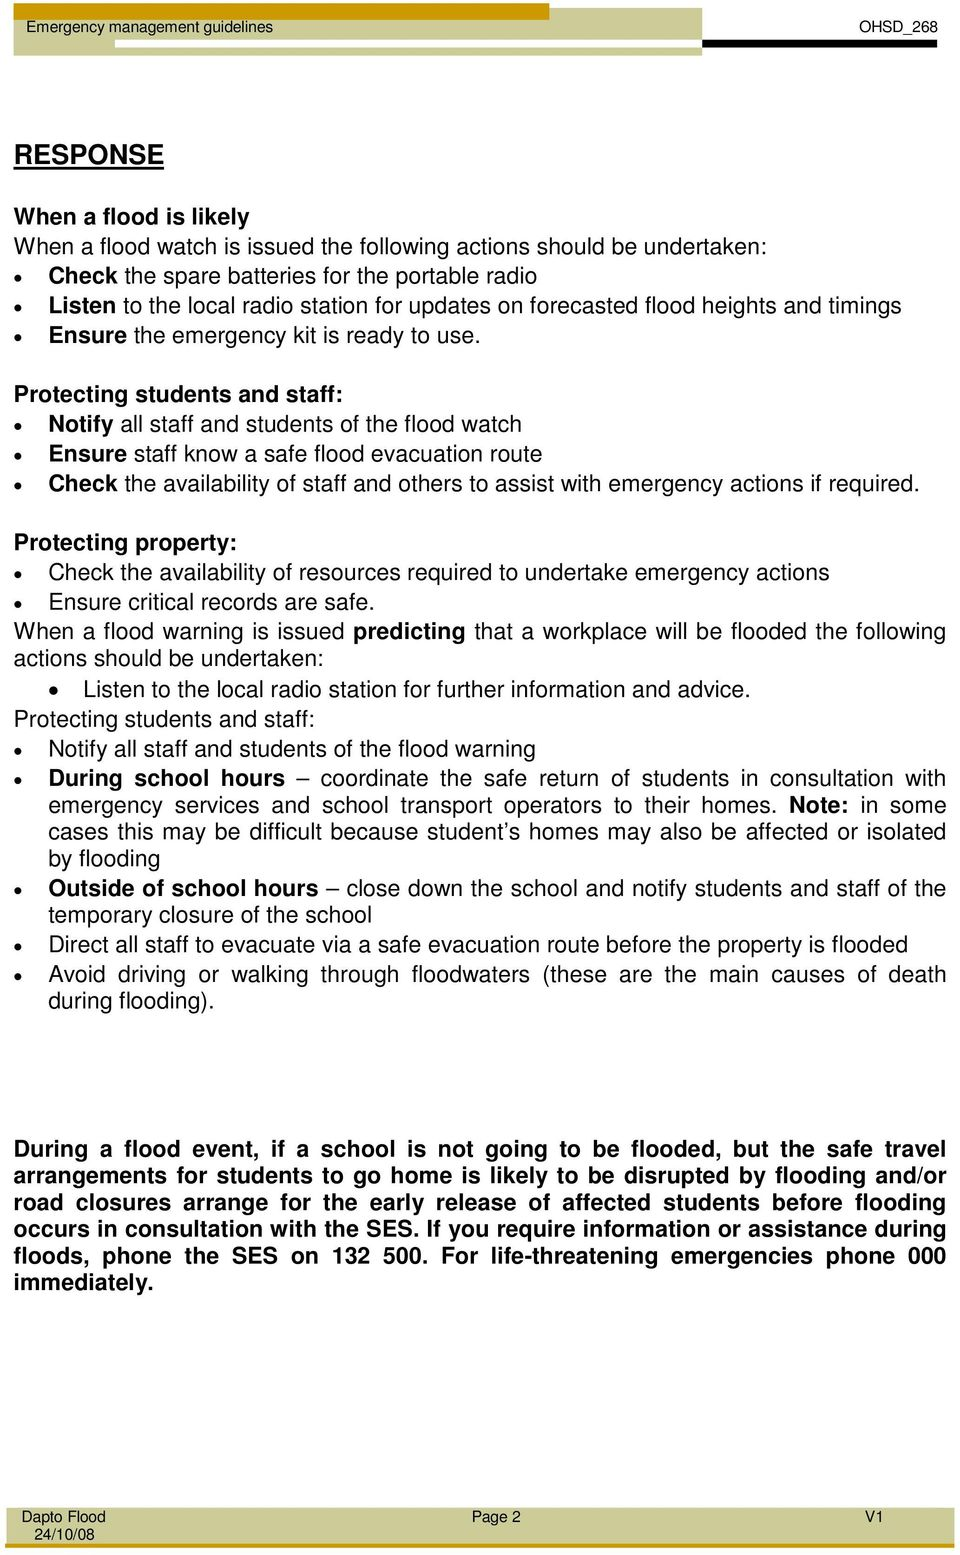 Protecting students and staff: Notify all staff and students of the flood watch Ensure staff know a safe flood evacuation route Check the availability of staff and others to assist with emergency